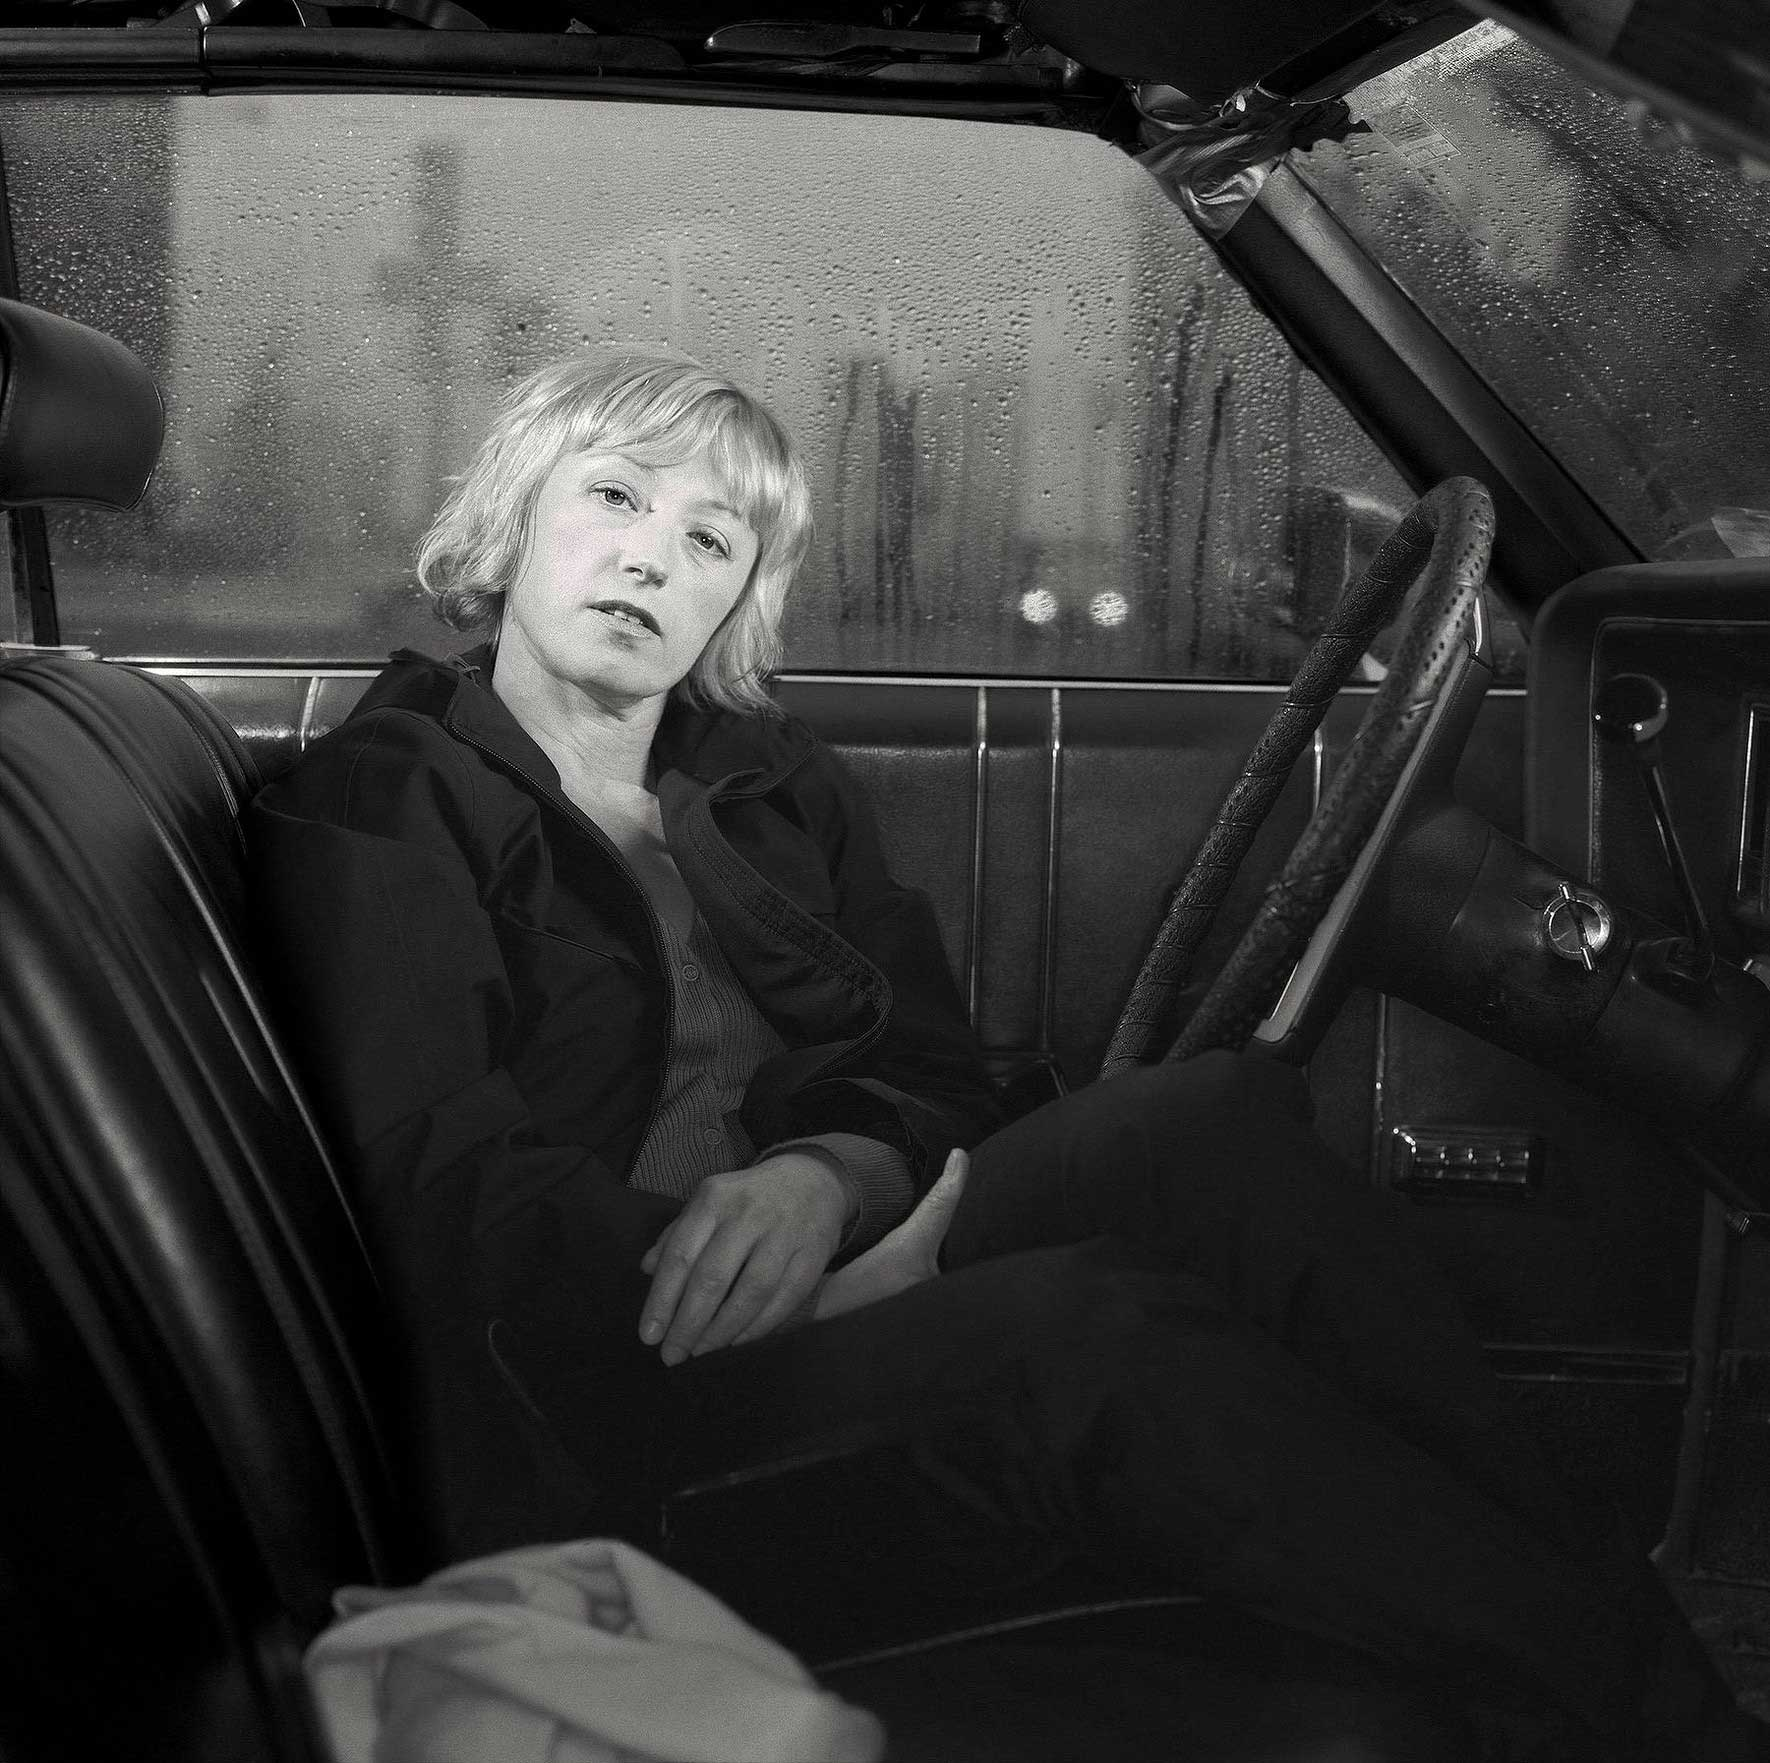 Cindy Sherman.                                                               She's a really lovely lady. We went to her loft in SoHo, I also had this car on hand. I was thinking that she always photographs herself, she doesn't have any assistants and she dresses up. I wanted to capture that. I love her film series and that inspired this photo.